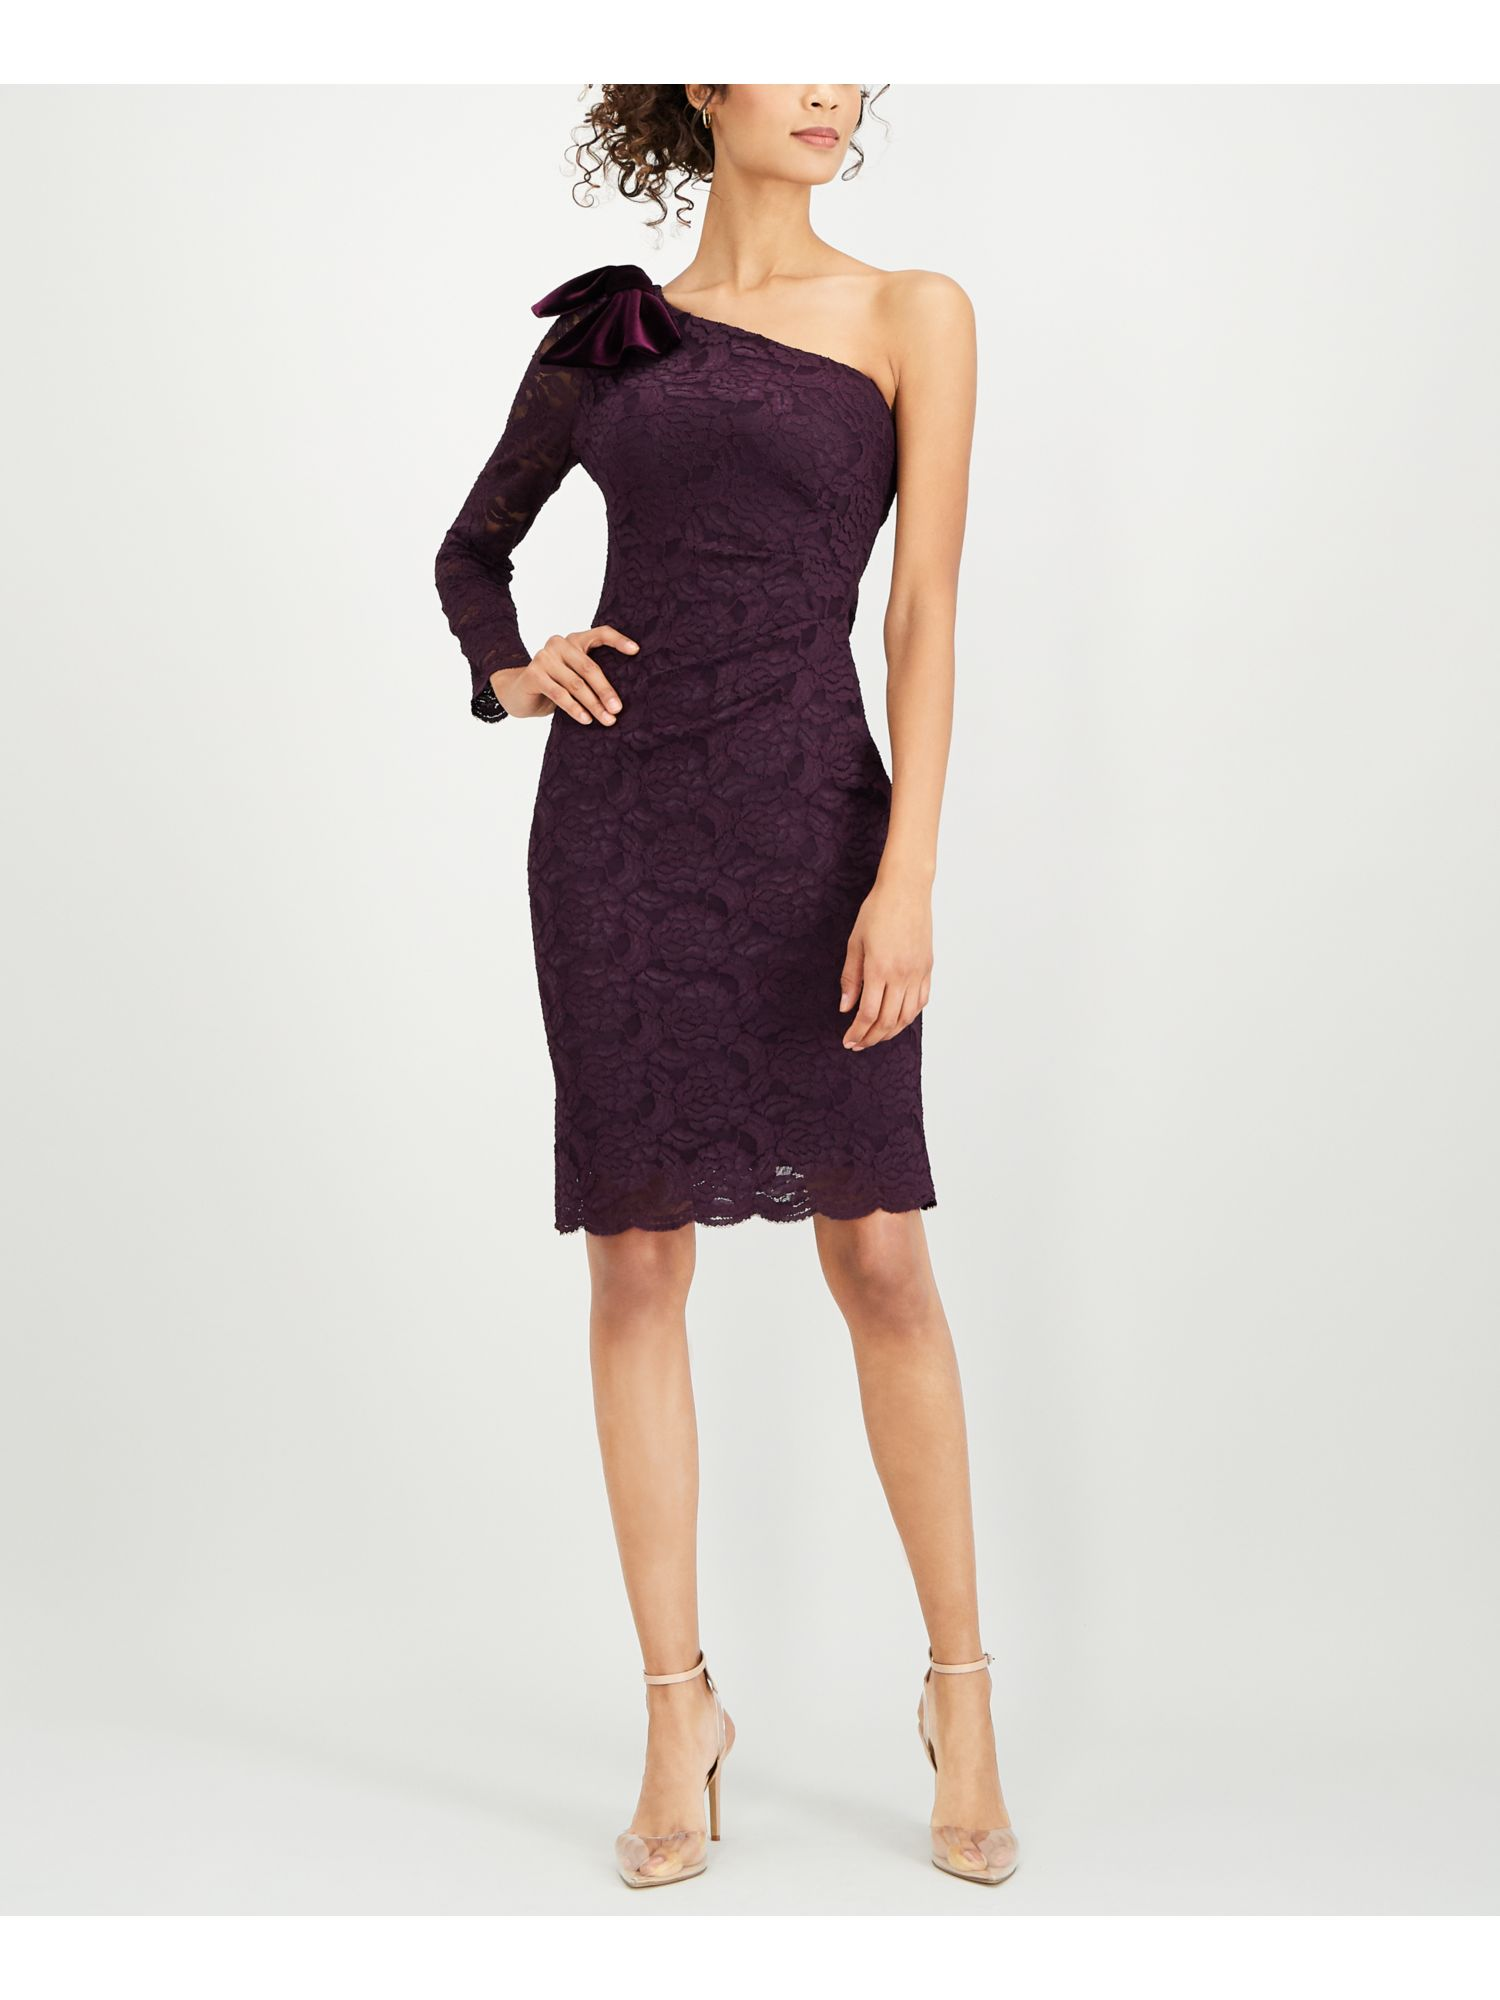 Details About Jessica Howard 109 Womens New 1069 Purple One Shoulder Lace Dress 16 Bb